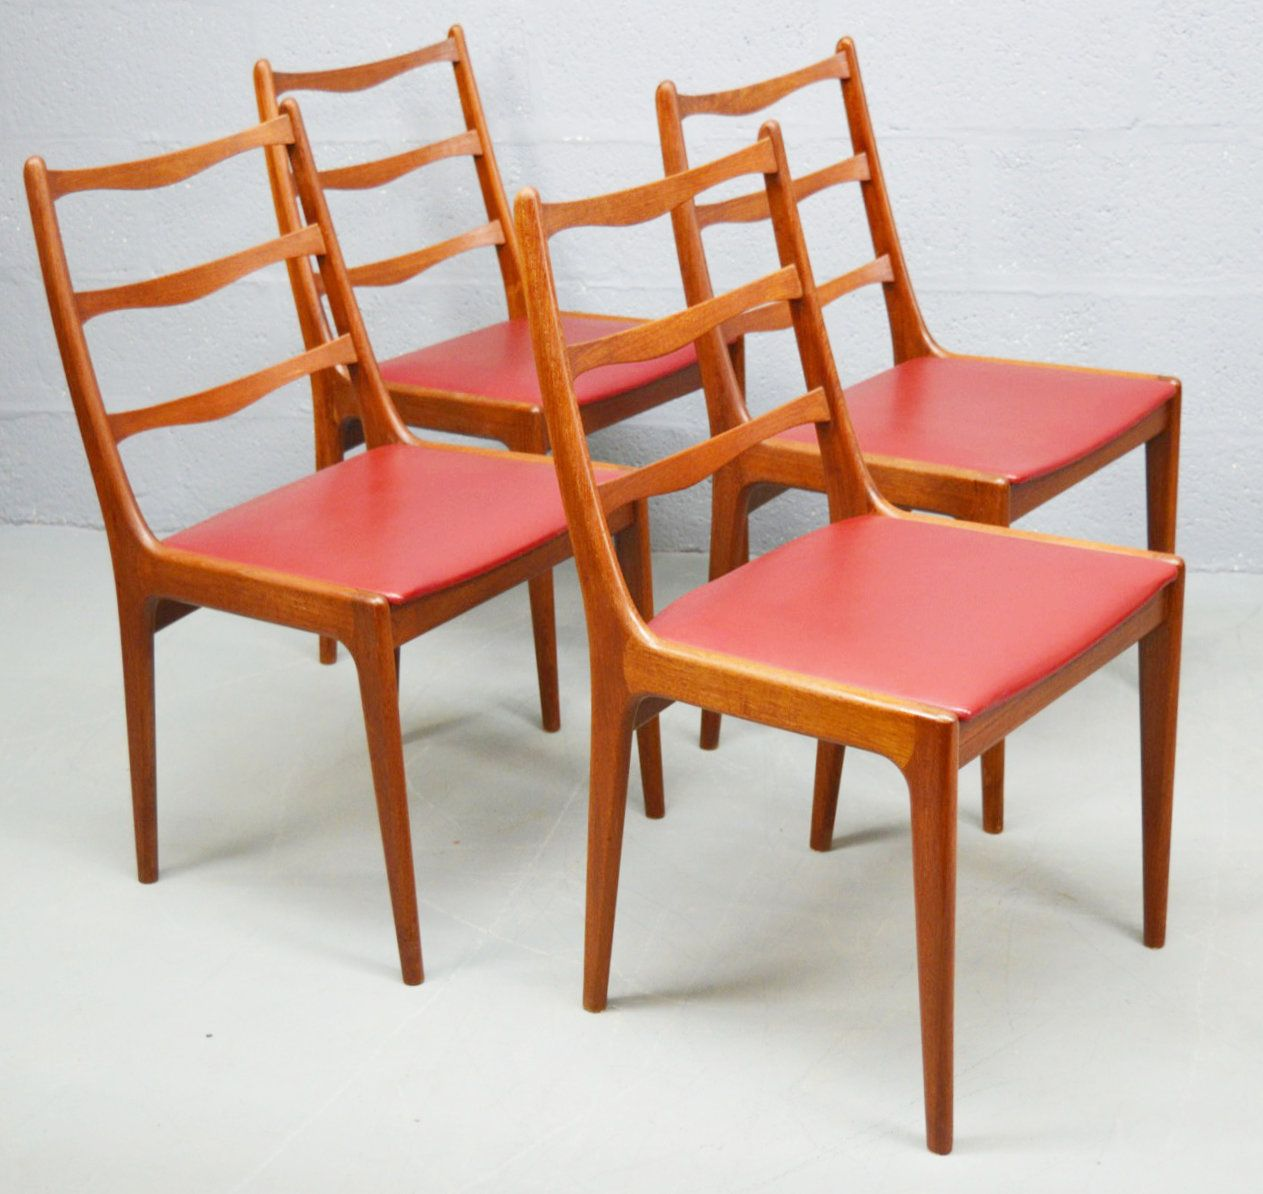 teak dining room chairs for sale patio chair covers near me mid century danish by kai kristiansen